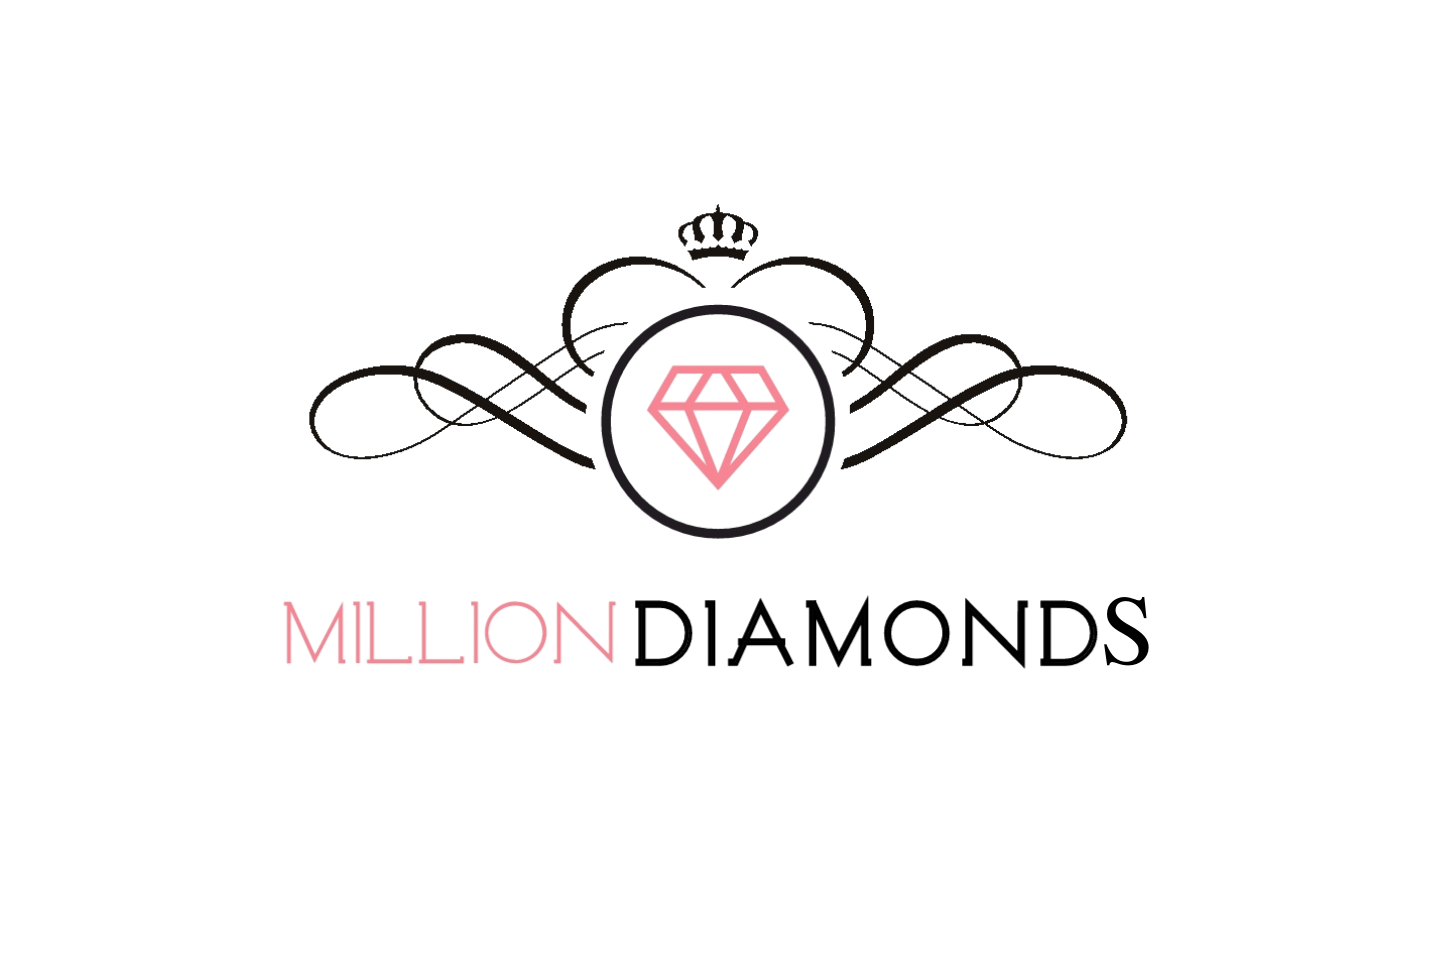 MILLION DIAMONDS